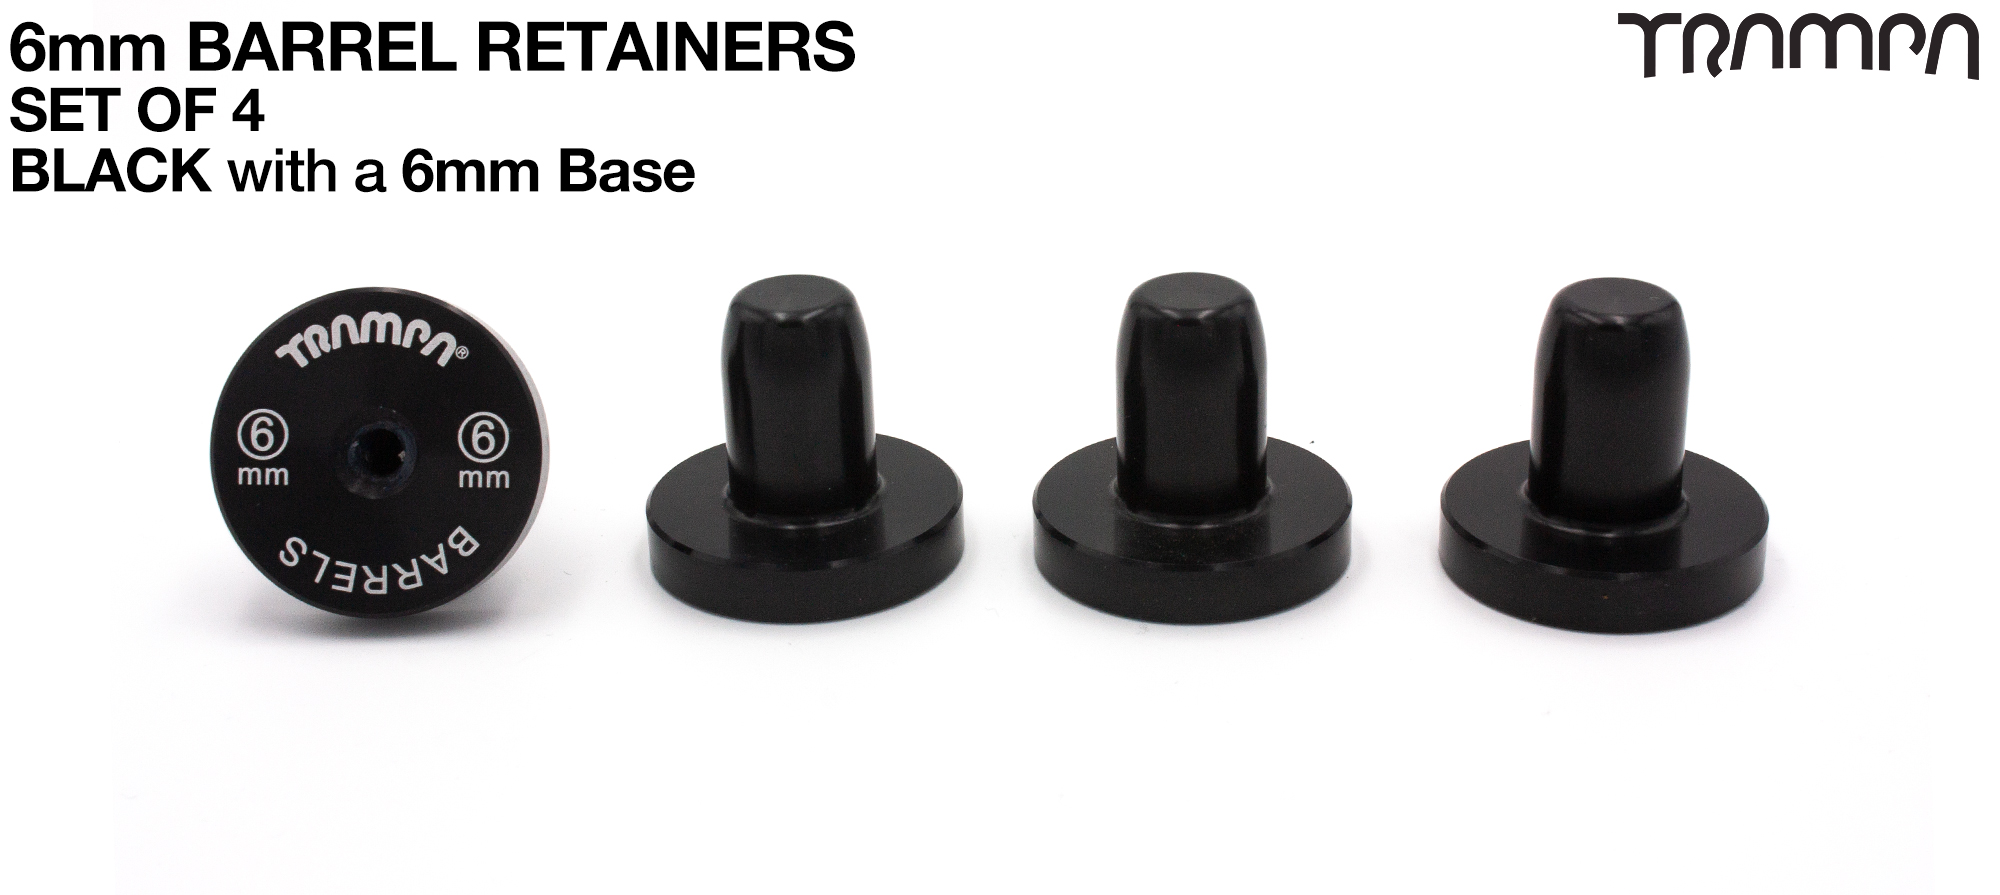 Barrel Retainers x4 with 6mm Base